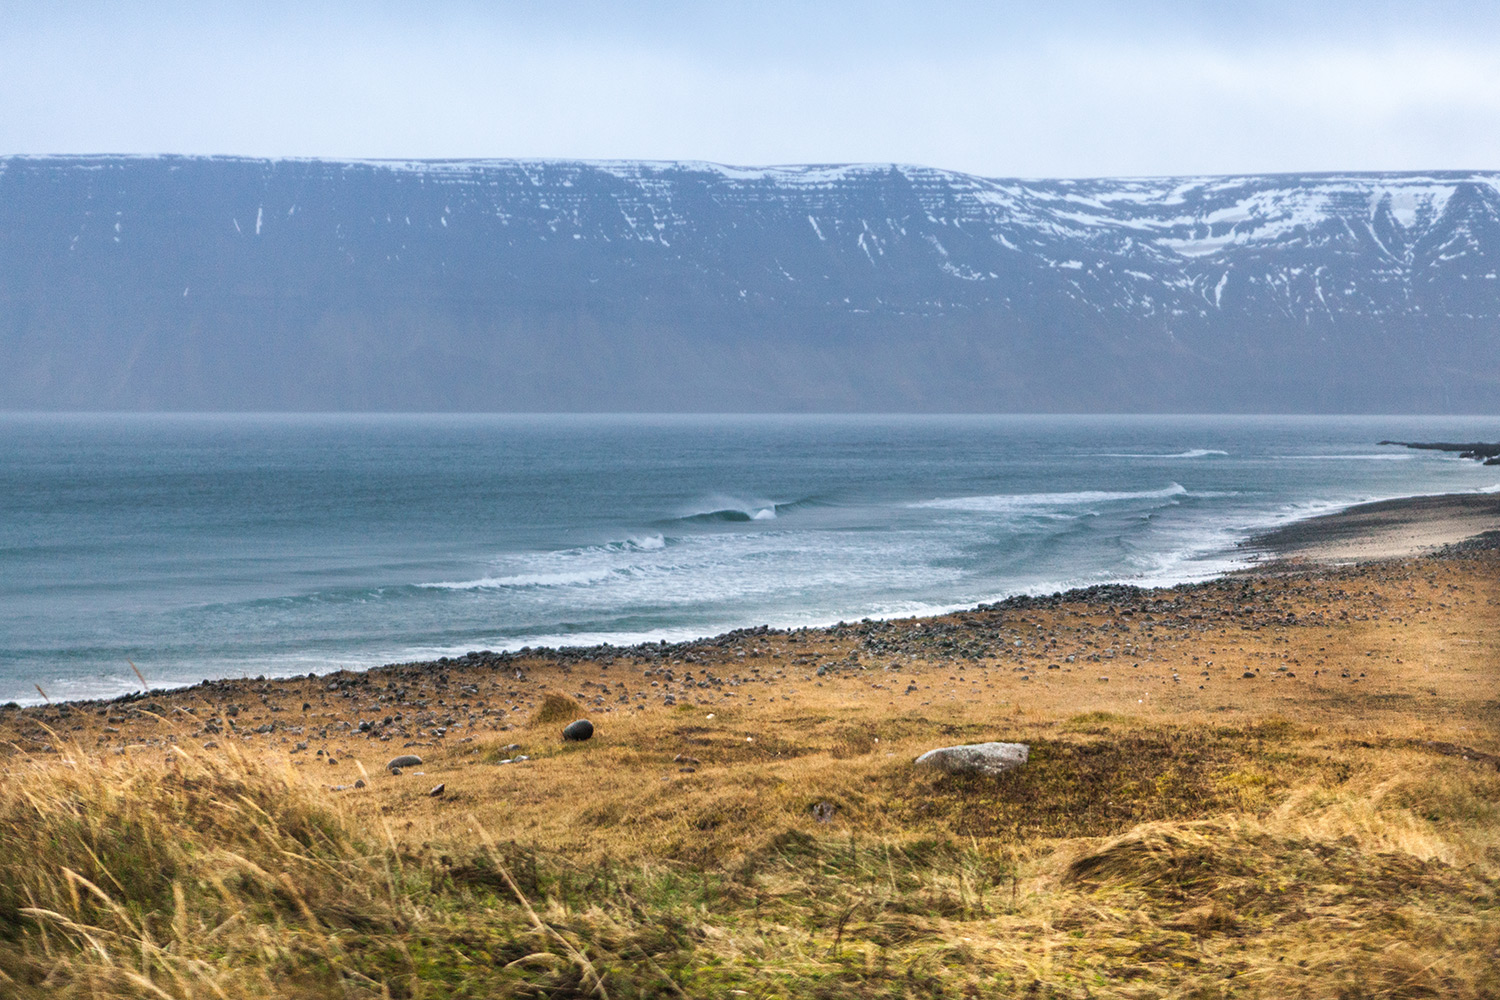 Surfing Iceland with Lee-Ann Curren